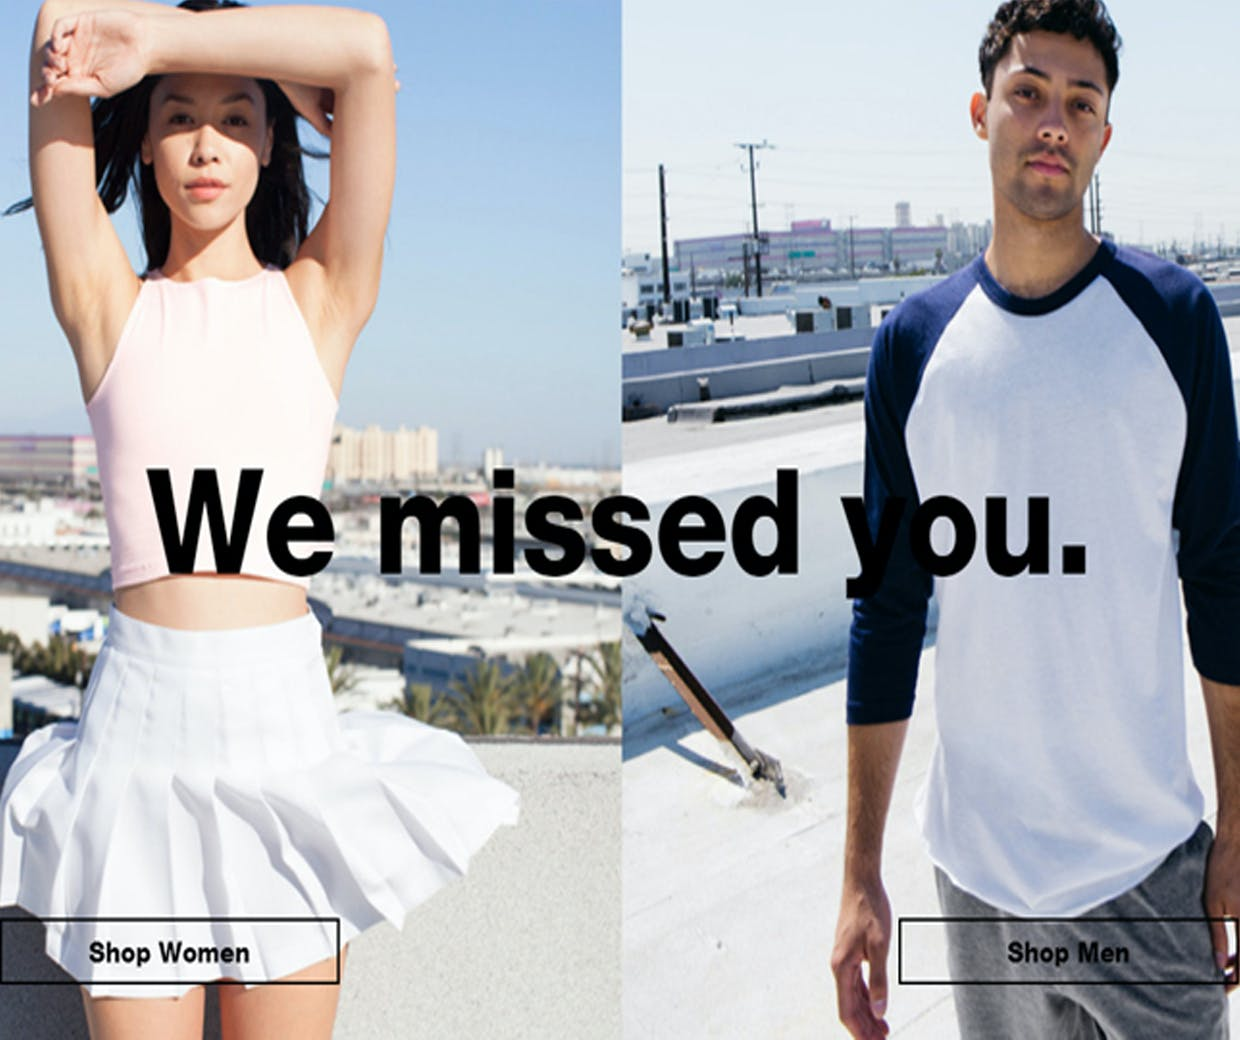 From provocative to body positive: The American Apparel ...